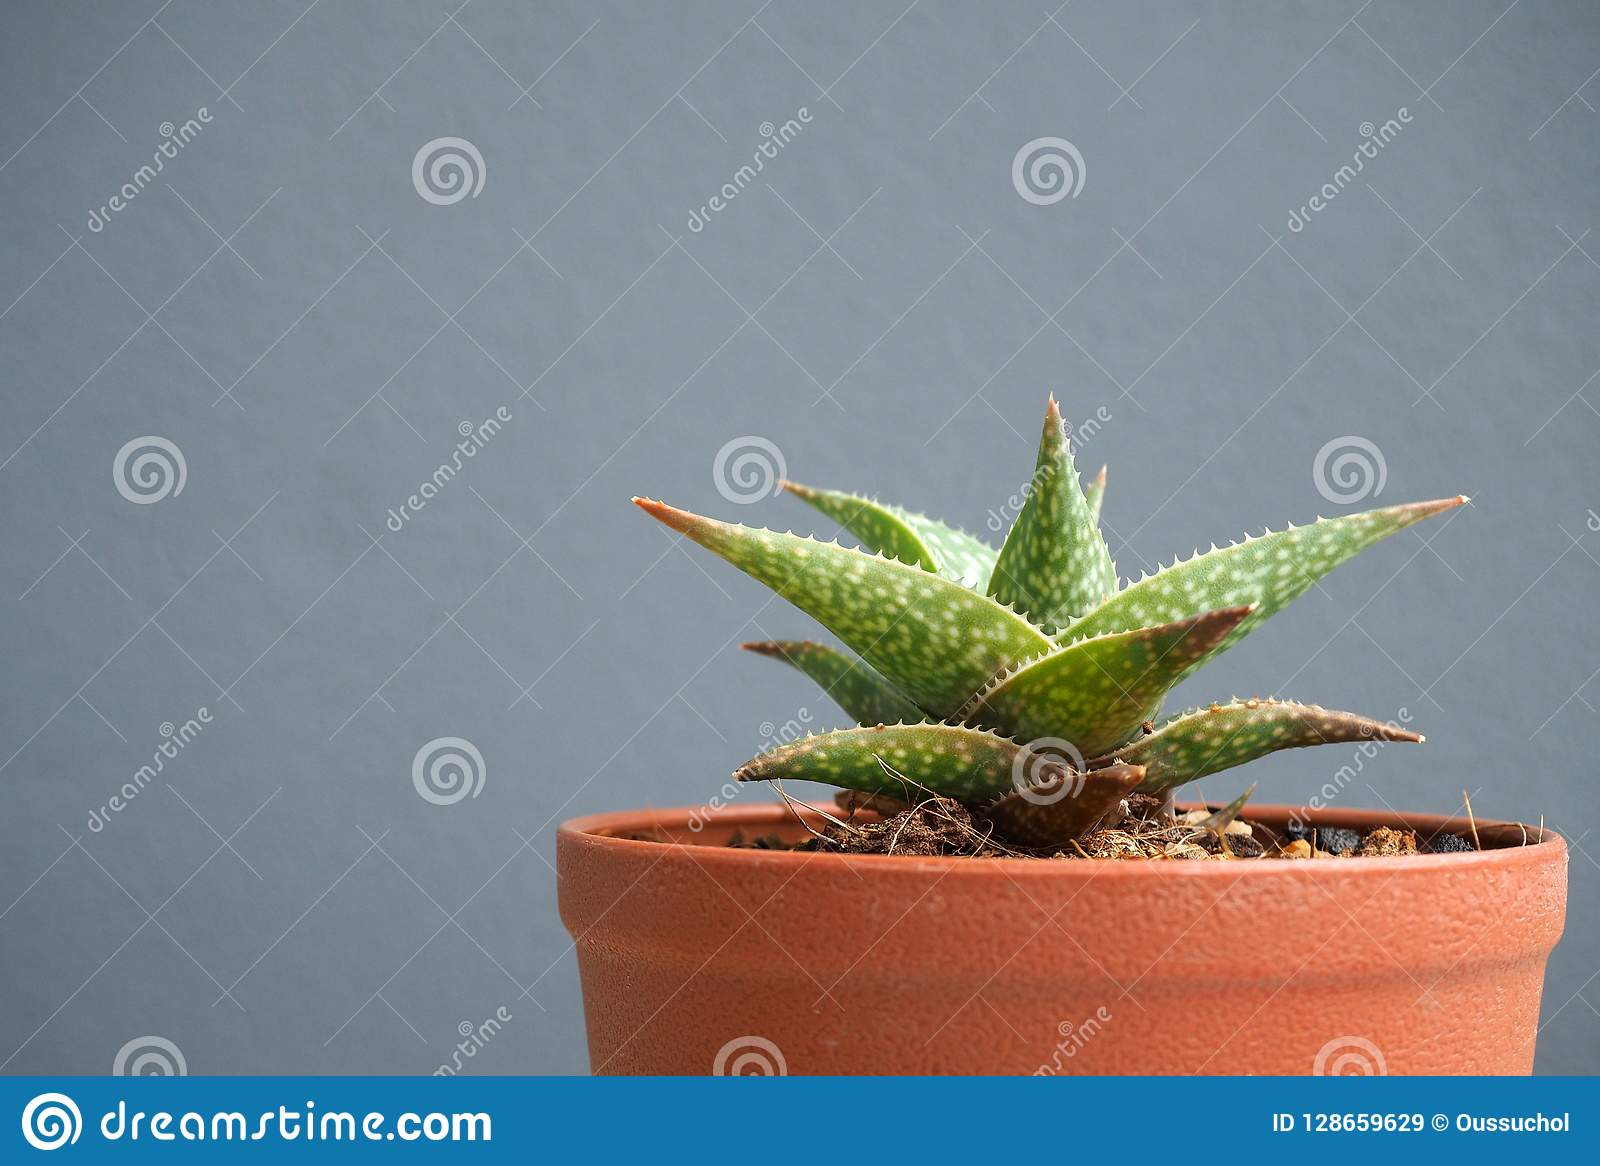 Potted Cactus Isolated On Gray Background Stock Image Image Of Potted Flowerpot 128659629